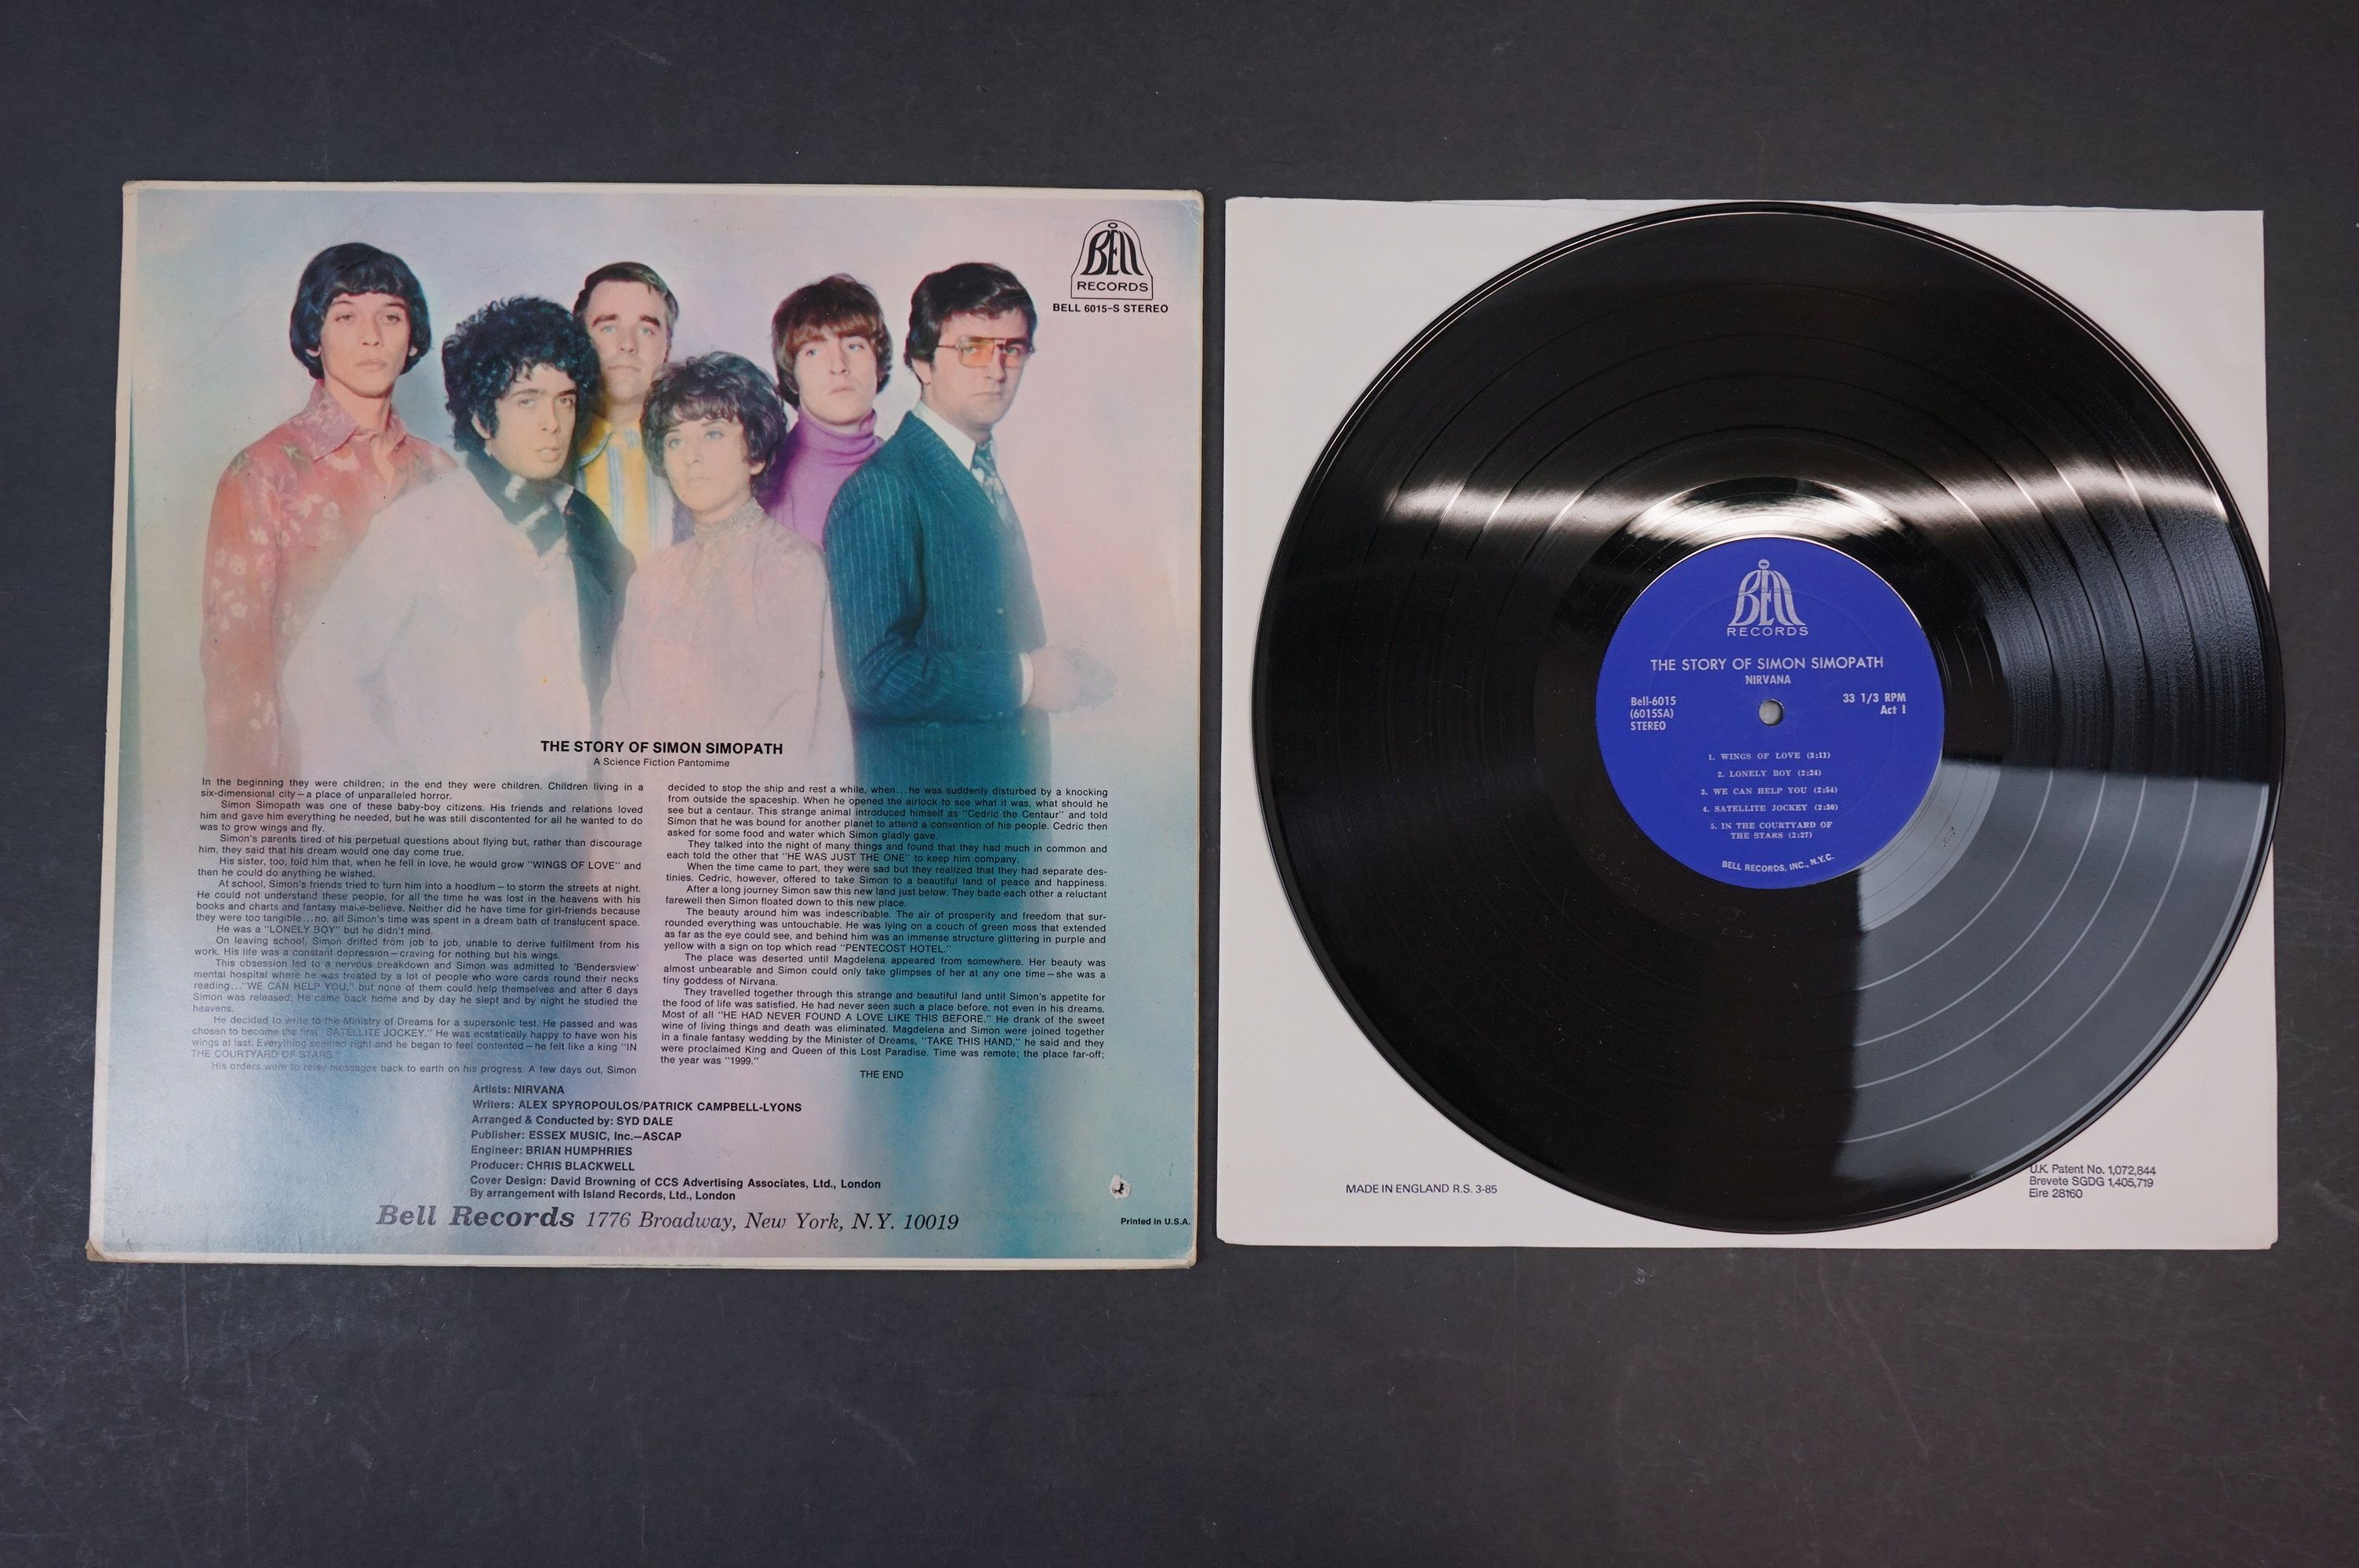 Vinyl - Two Nirvana LPs to include The Story of Simon Simopath LP on Bell Records 6015-S Stereo, - Image 5 of 13